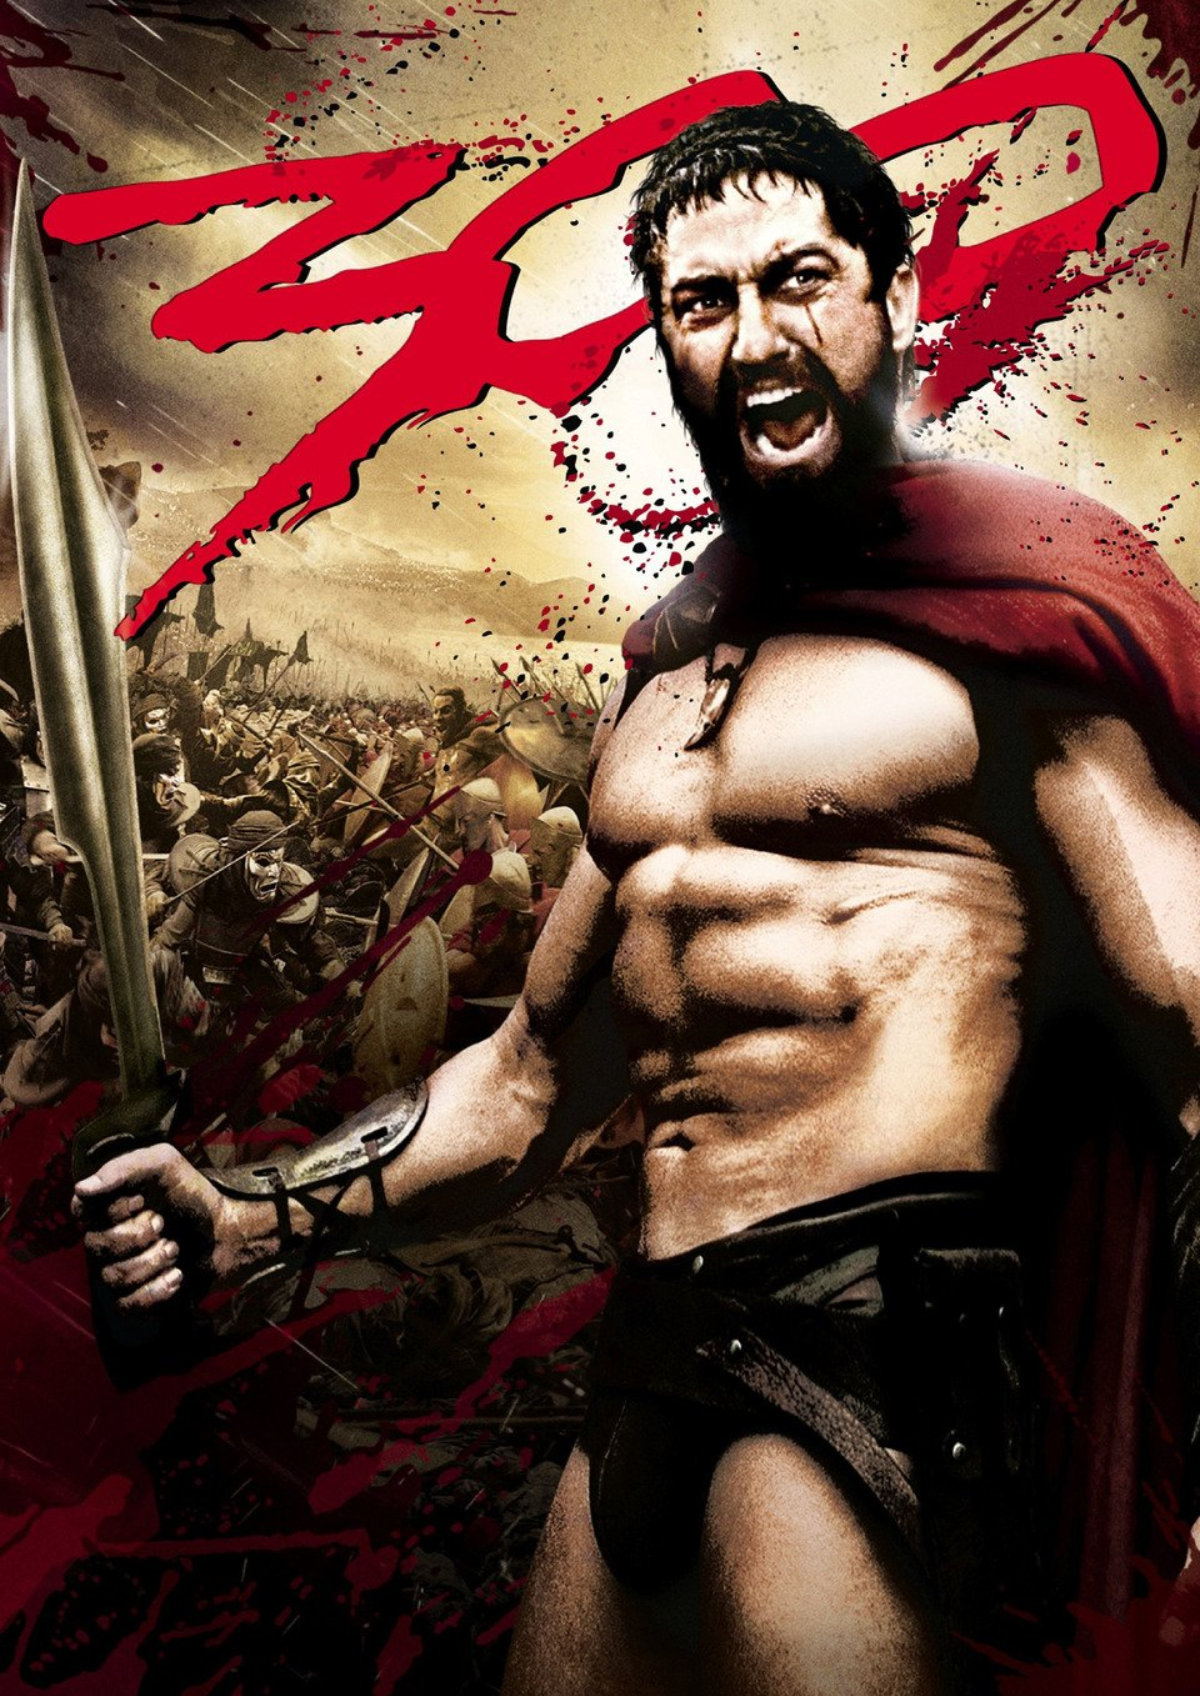 '300' movie poster